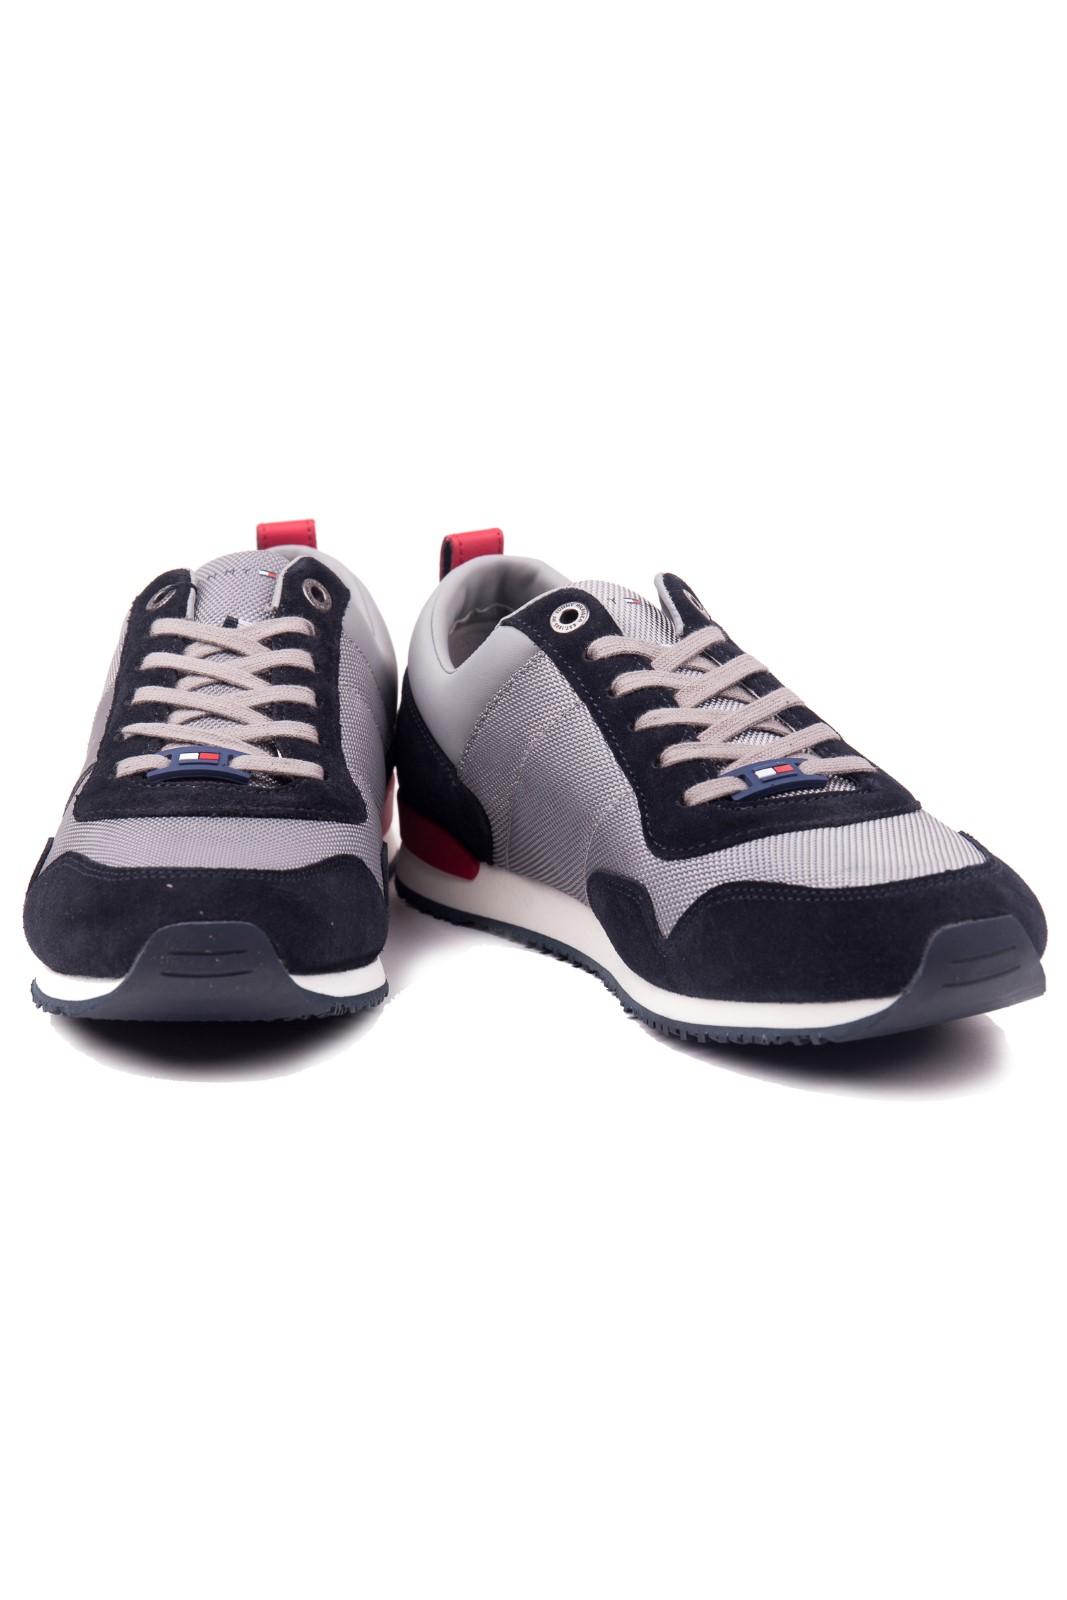 Tommy Hilfiger sivé pánske tenisky Iconic Material Mix Runner Midnight-Light Grey-Tango Red